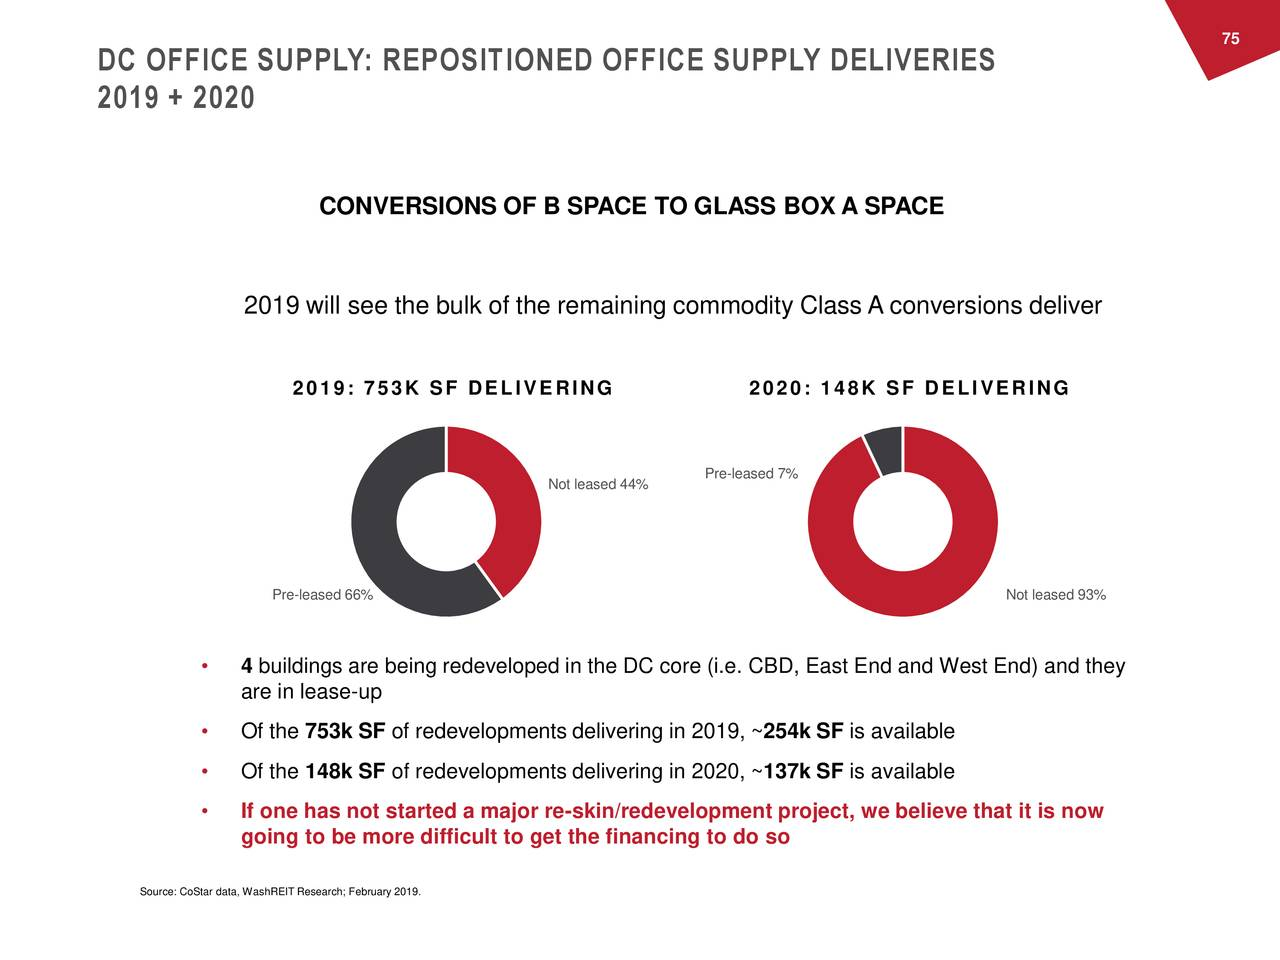 DC OFFICE SUPPLY: REPOSITIONED OFFICE SUPPLY DELIVERIES 2019 + 2020 CONVERSIONS OF B SPACE TO GLASS BOX A SPACE 2019 will see the bulk of the remaining commodity Class A conversions deliver 2019: 753K SF DELIVERING 2020: 148K SF DELIVERING Pre-leased 7% Not leased 44% Pre-leased 66% Not leased 93% • 4 buildings are being redeveloped in the DC core (i.e. CBD, East End and West End) and they are in lease-up • Of the 753k SF of redevelopments delivering in 2019, ~254k SF is available • Of the 148k SF of redevelopments delivering in 2020, ~137k SF is available • If one has not started a major re-skin/redevelopment project, we believe that it is now going to be more difficult to get the financing to do so Source: CoStar data, WashREIT Research; February 2019.